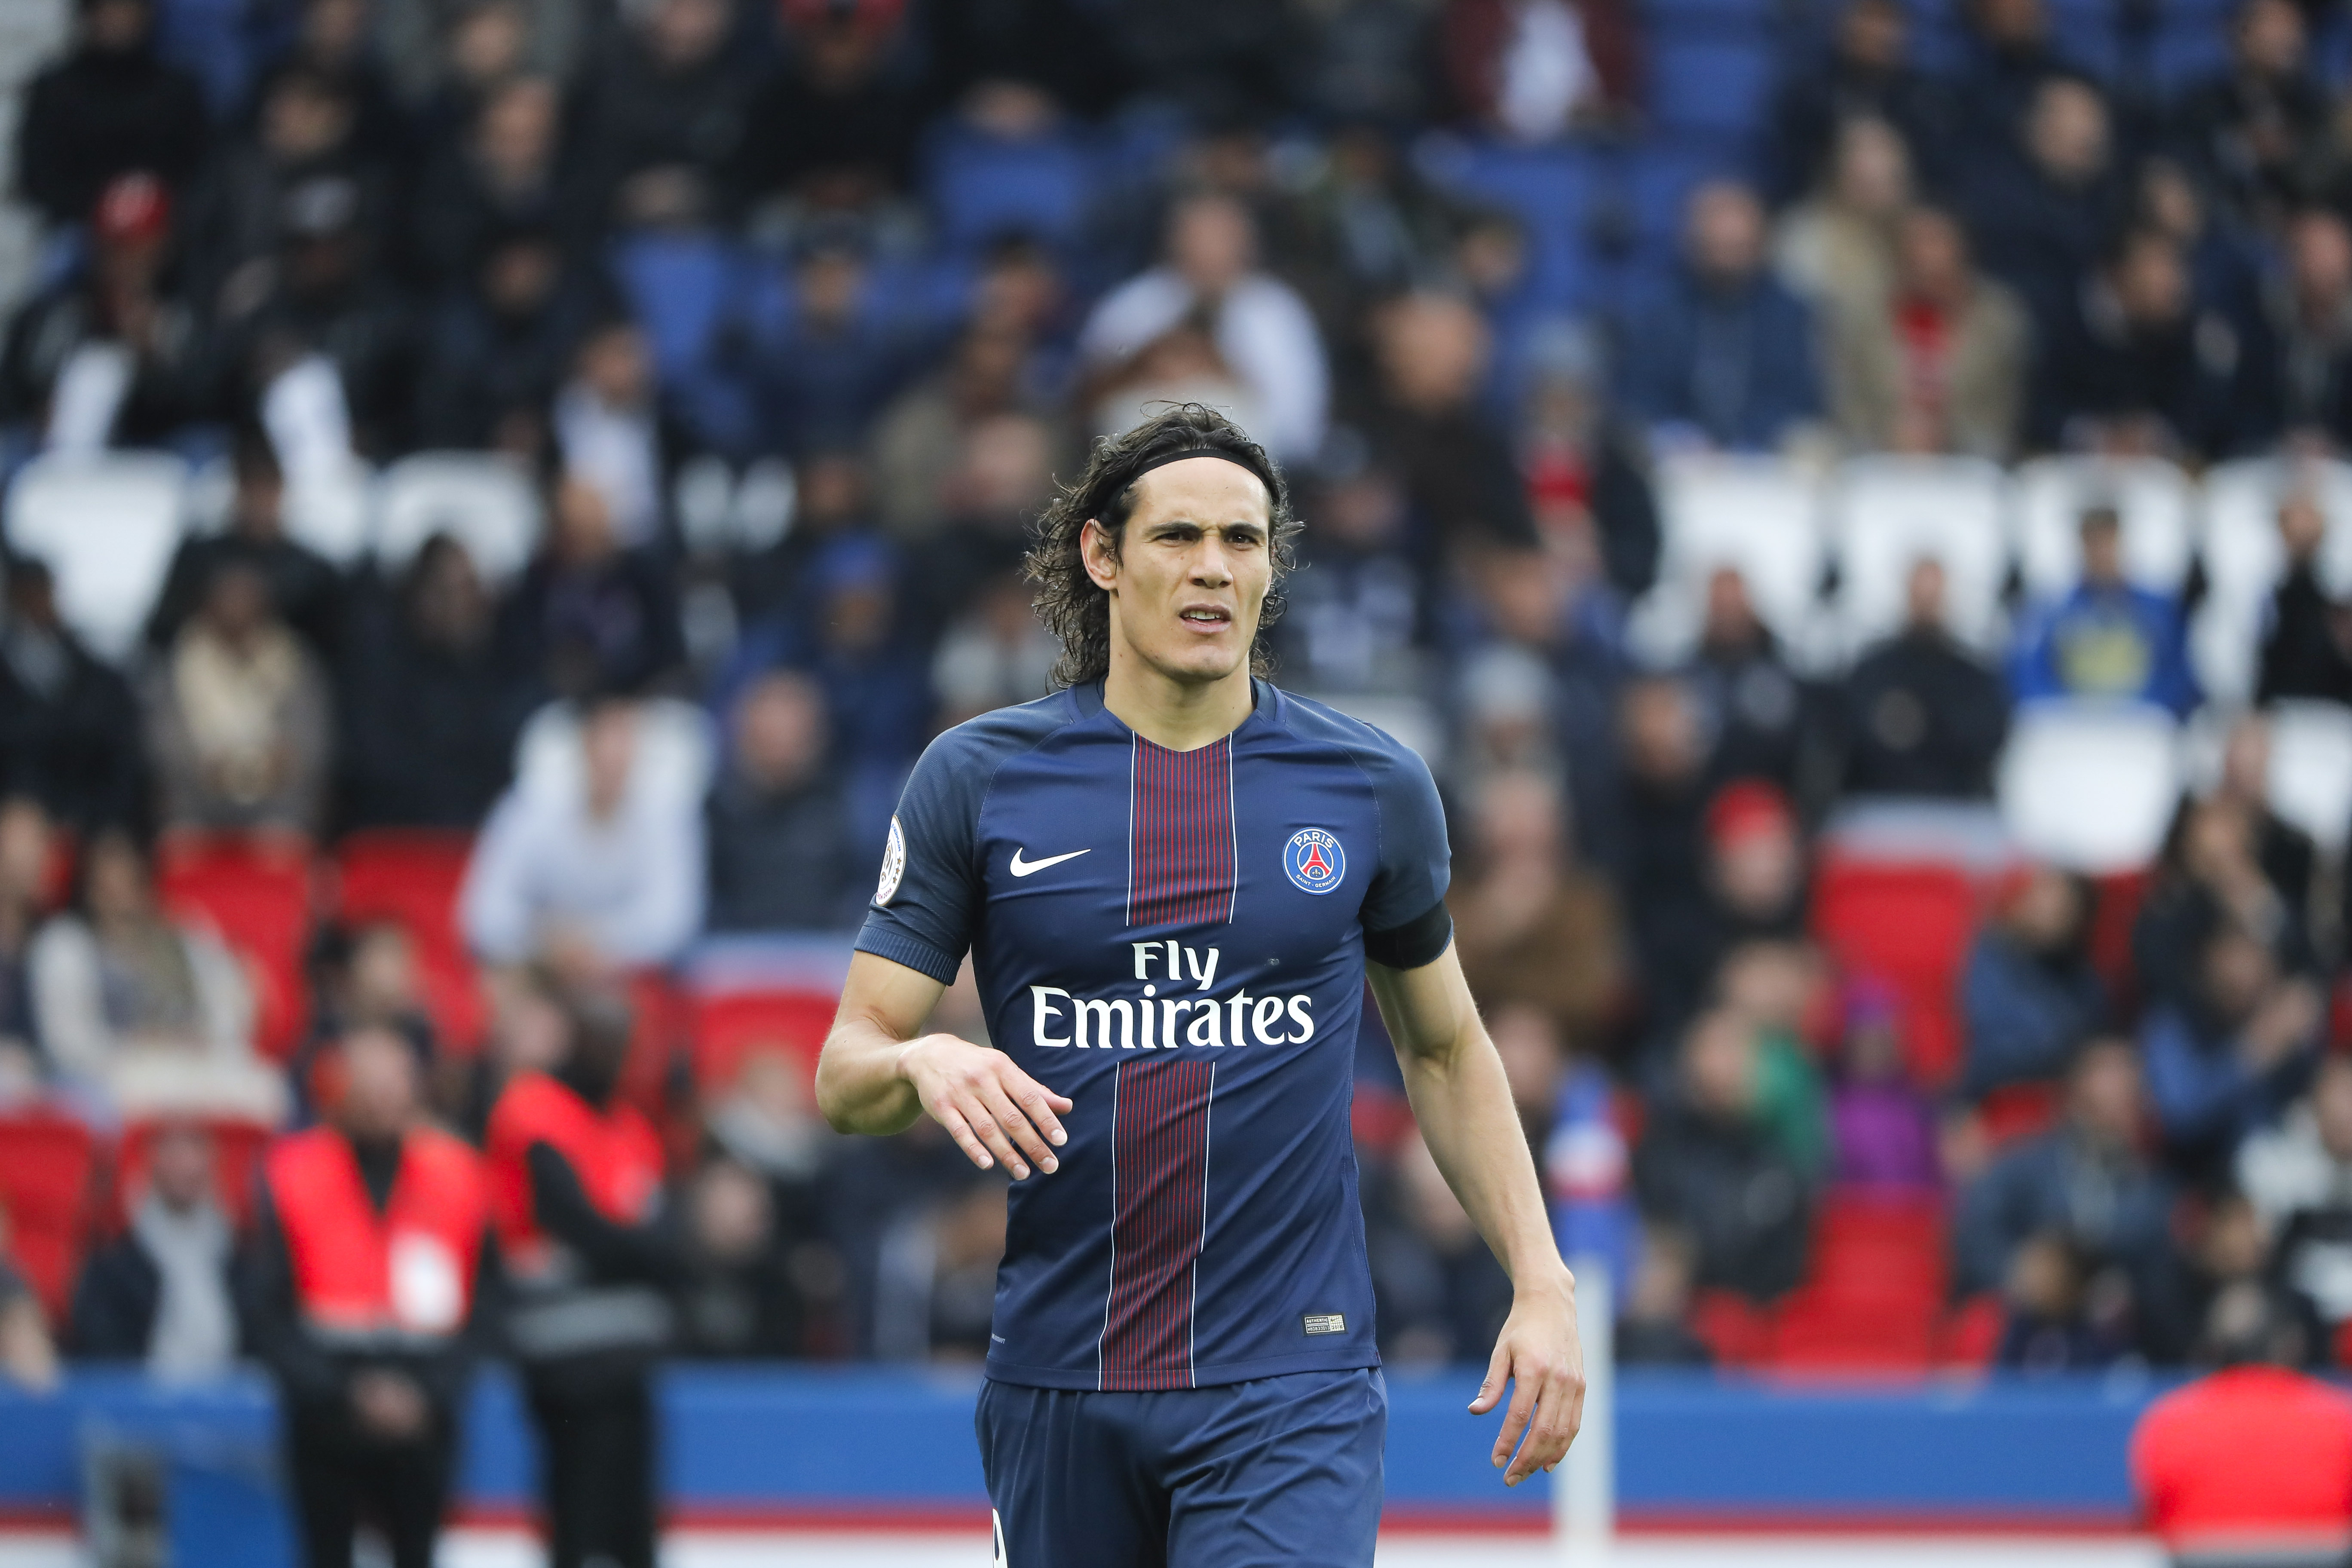 Football - Ligue 1 - Cavani prolonge l'aventure parisienne jusqu'en 2020